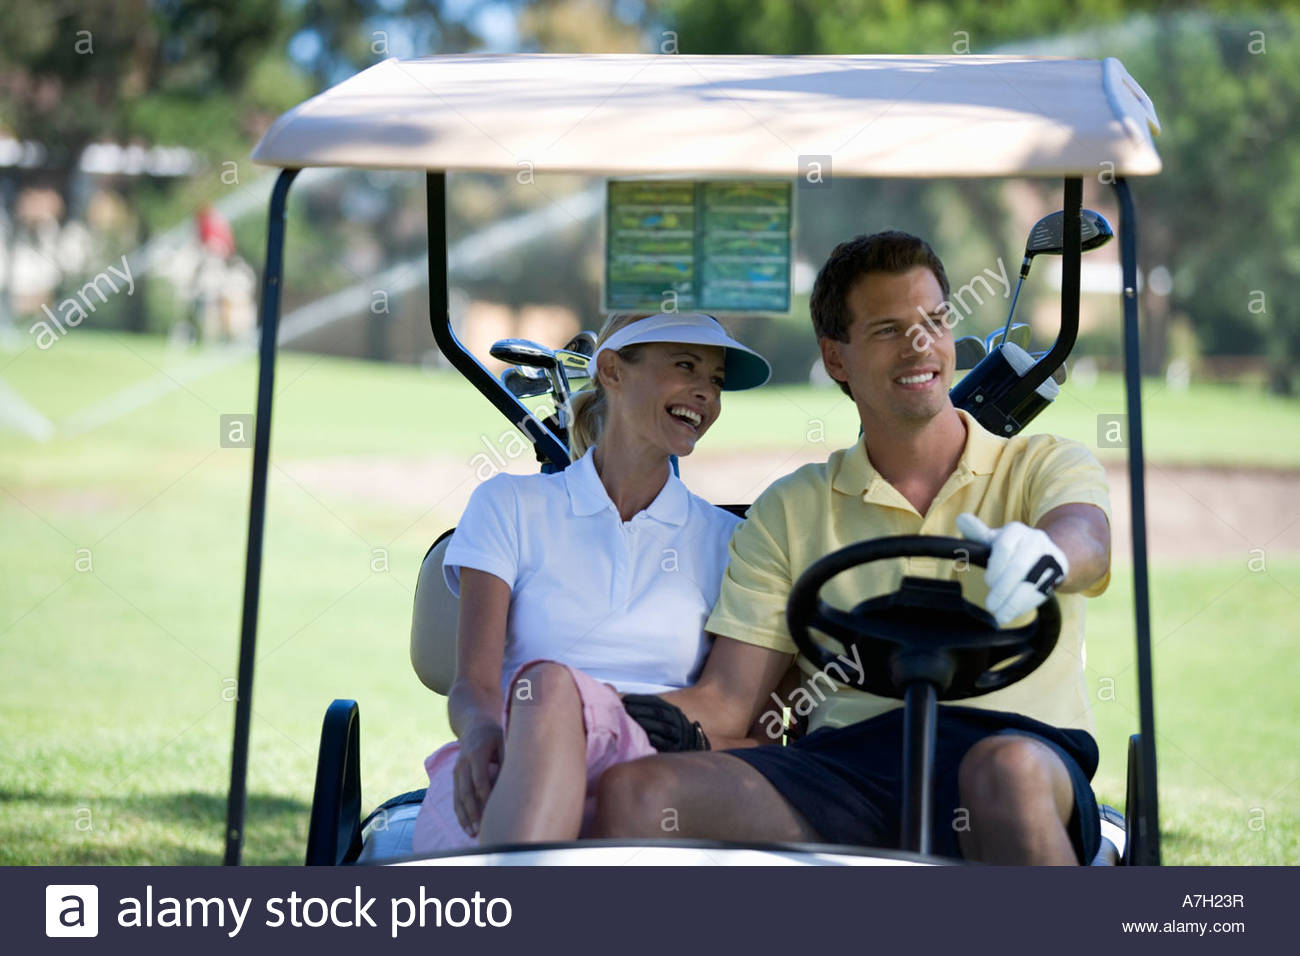 Couple in a golf buggy - Stock Image